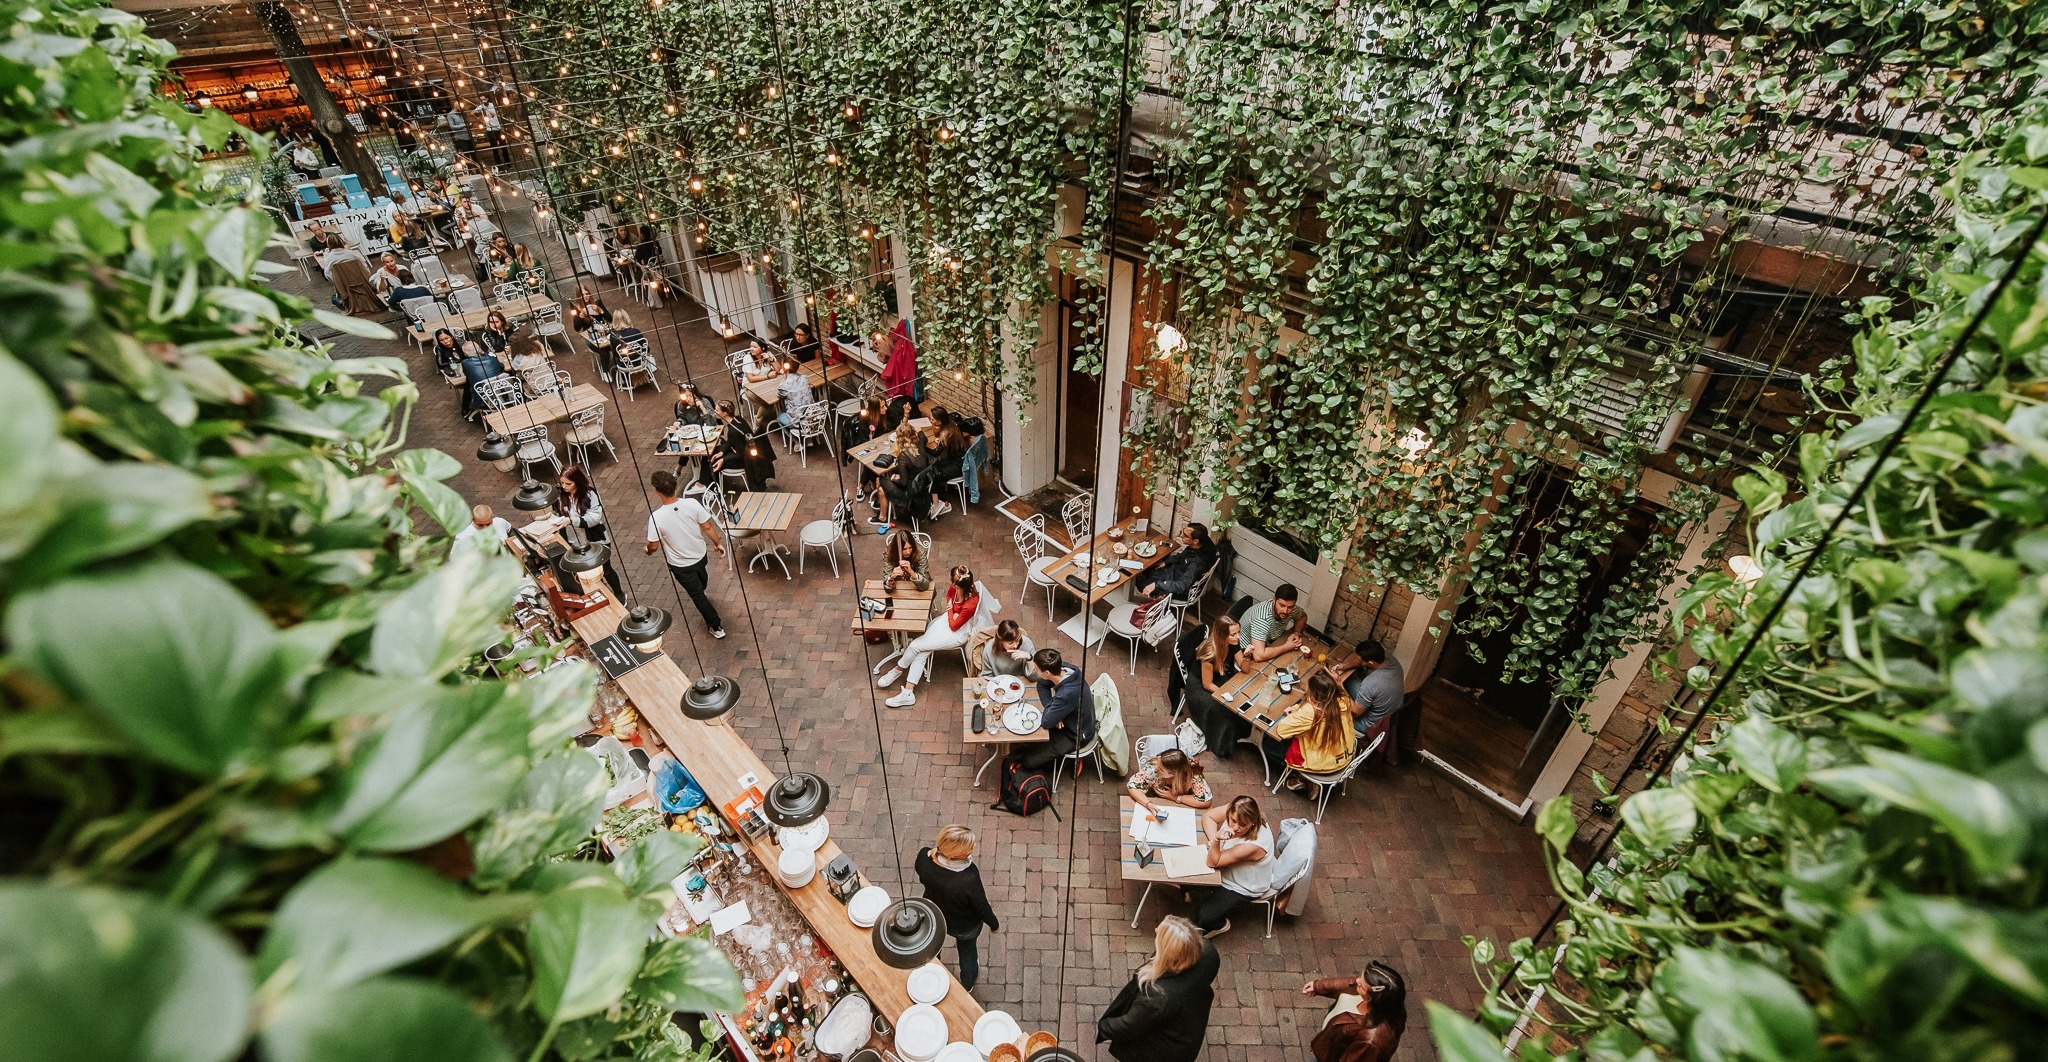 Most Instagrammable Restaurants In The World